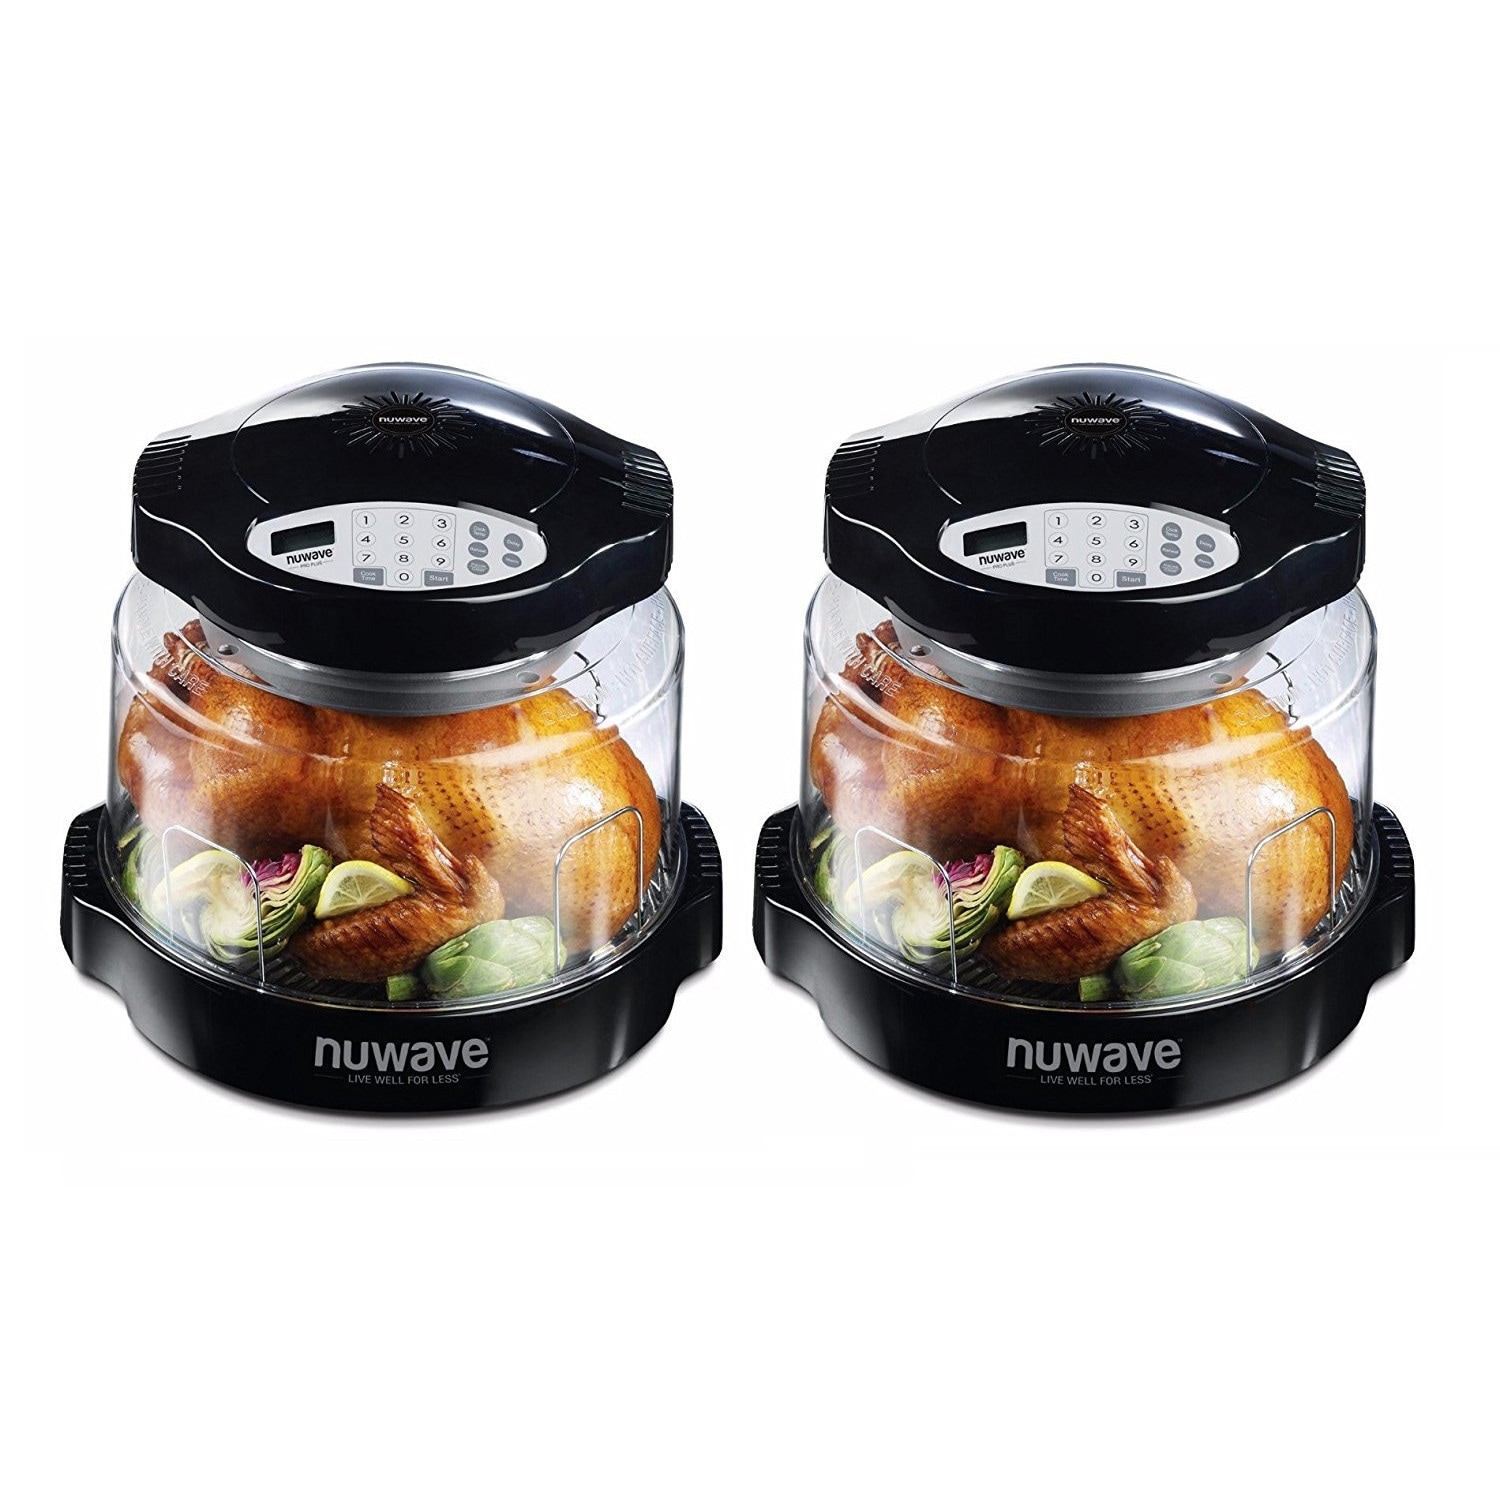 Nu-Wave Oven Pro Plus with Black Digital Panel (2-Pack)